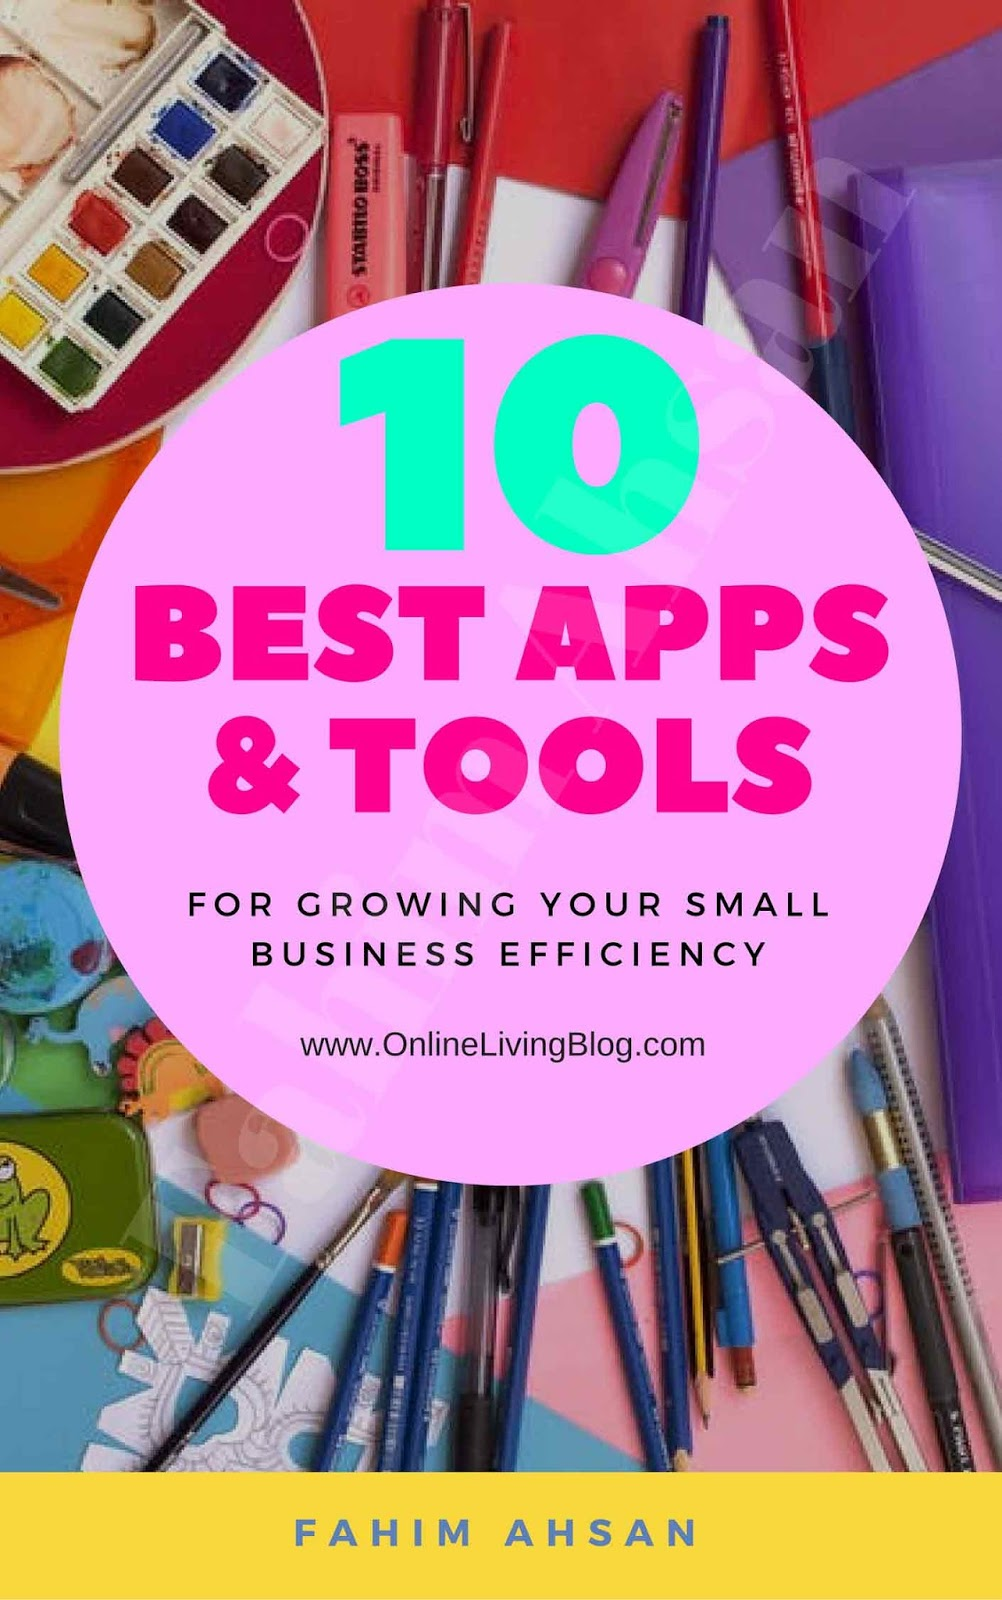 10 Best Apps & Tools For Growing Your Small Business Efficiency